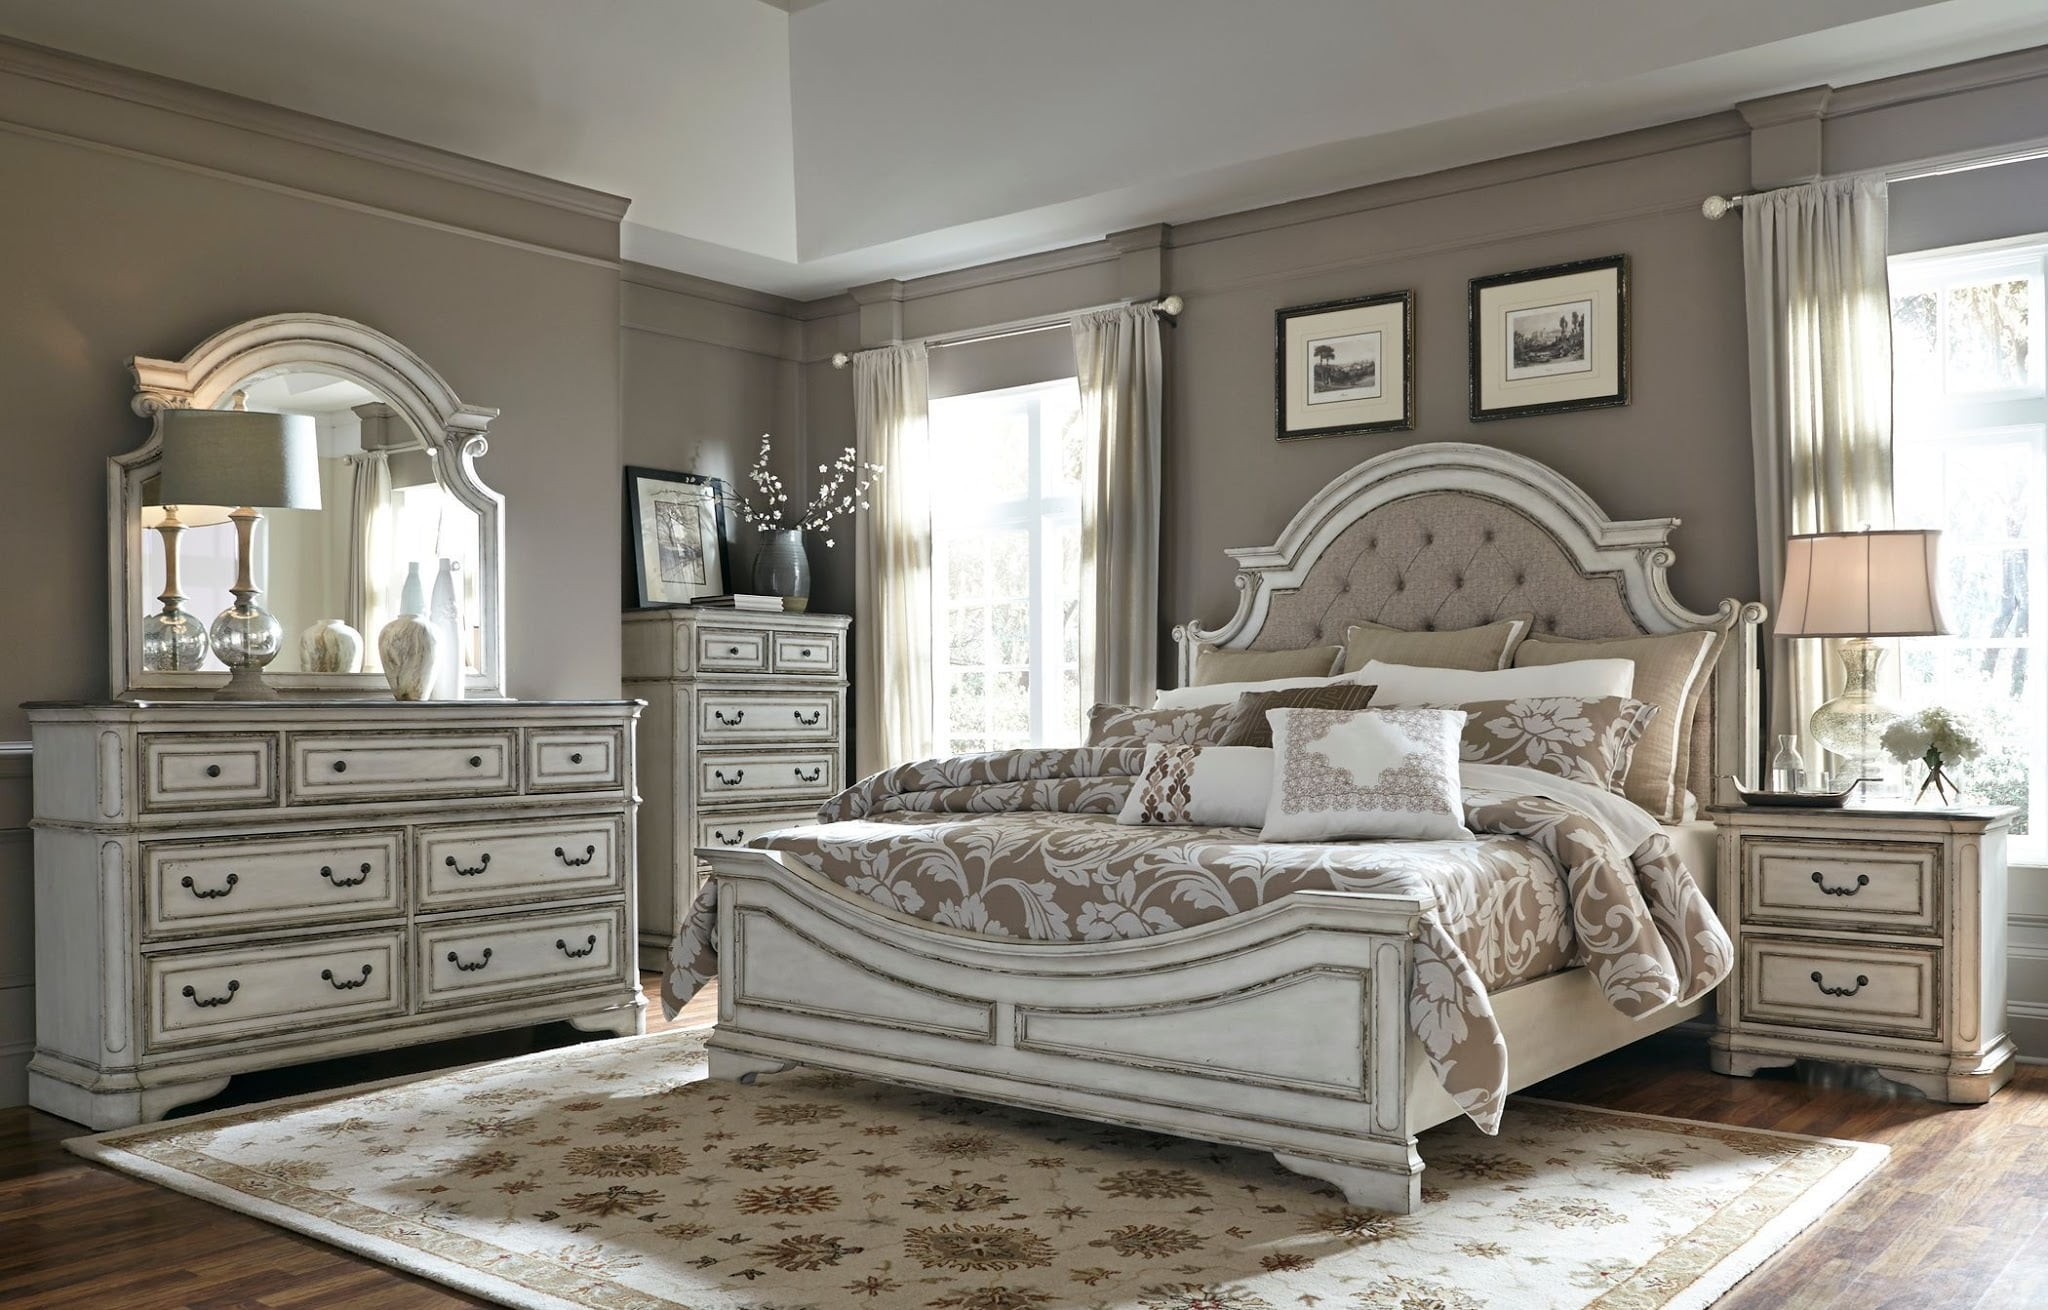 Magnolia Manor Antique White Upholstered Panel Bedroom Set From Liberty |  Coleman Furniture